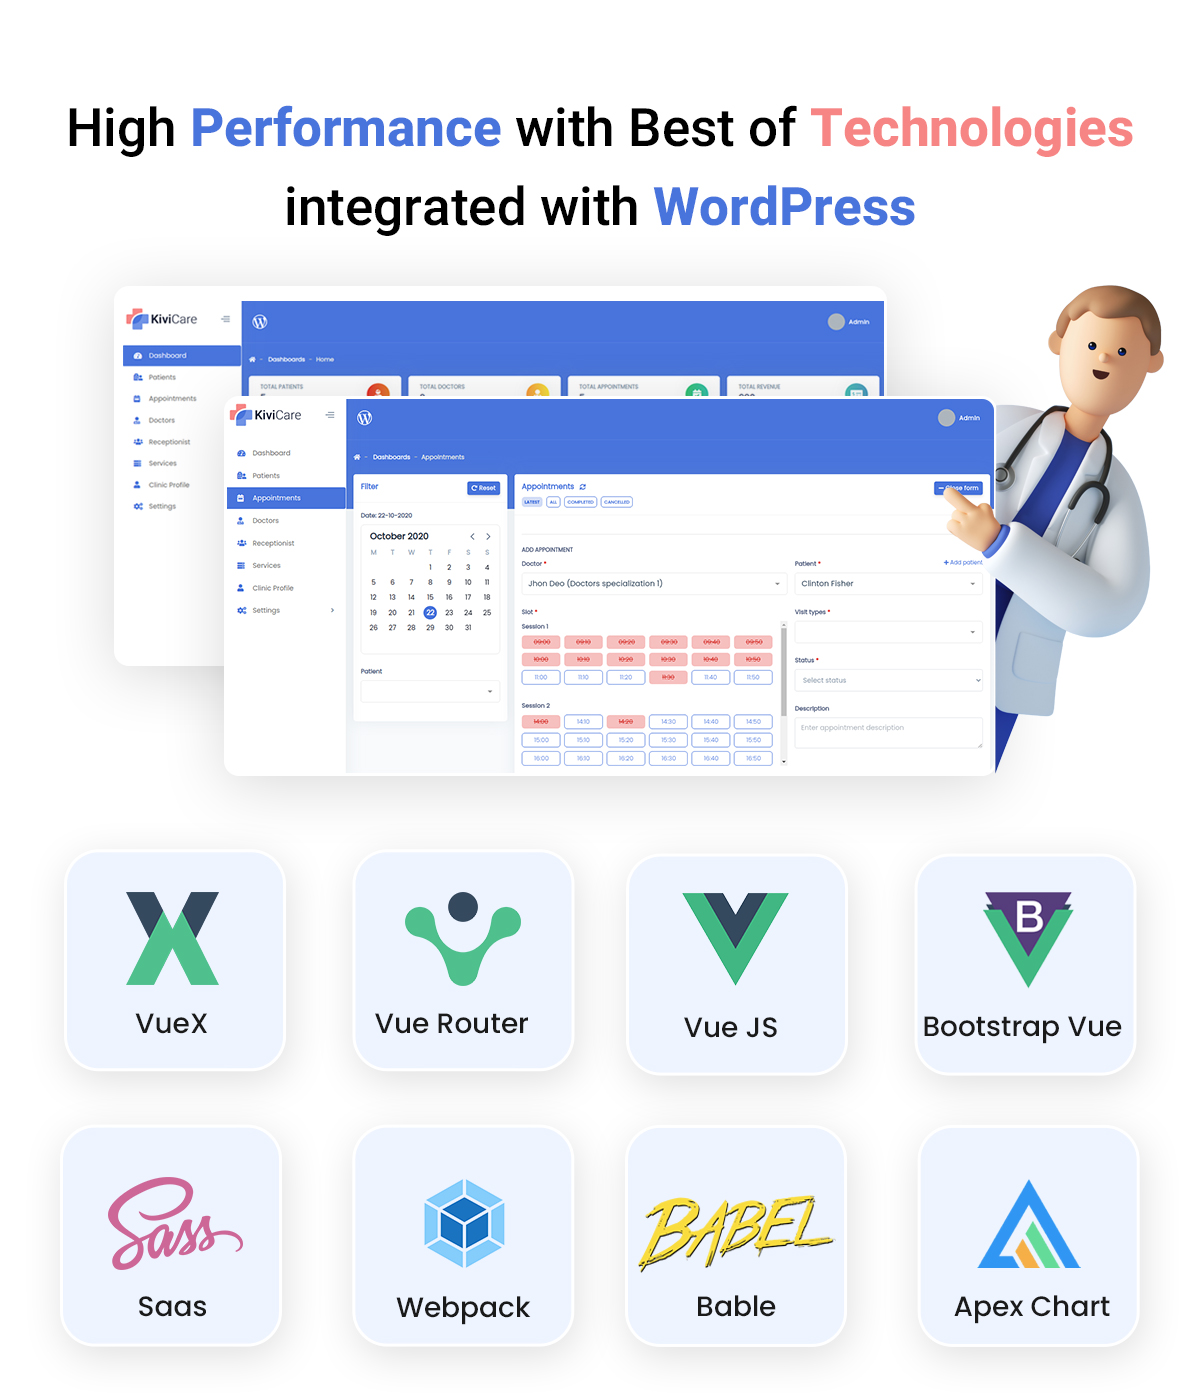 Free Clinic and Patient Management Plugin (EHR)   KiviCare   Iqonic Design free clinic and patient management plugin KiviCare screenshot 2